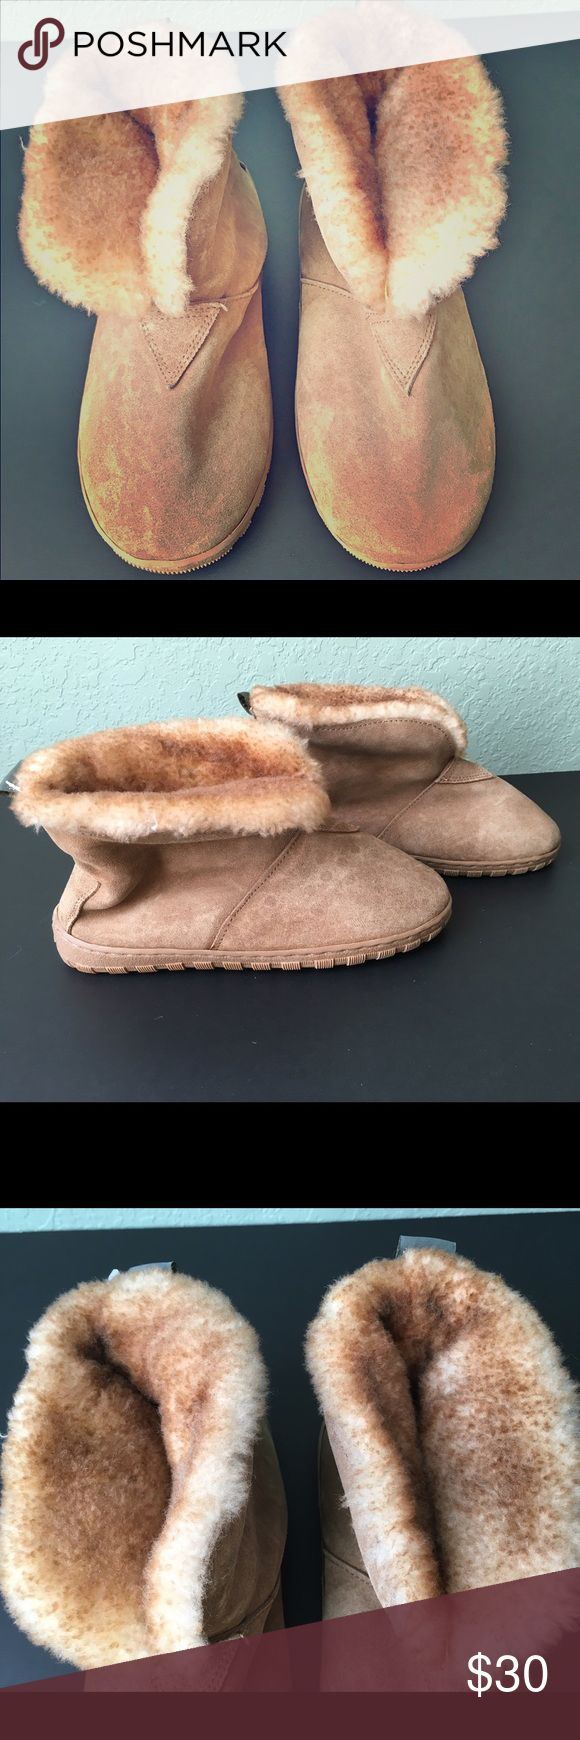 Cloud Nine Sheepskin Booties Cloud Nine Sheepskin Booties ~ Genuine Sheepskin ~ Suede Leather - Upper ~ Synthetic Leather - Outer Sole ~ The fleecy cover flips up over your ankles or you can flip down. ~ Super warm and cozy! Cloud 9 Shoes Ankle Boots & Booties